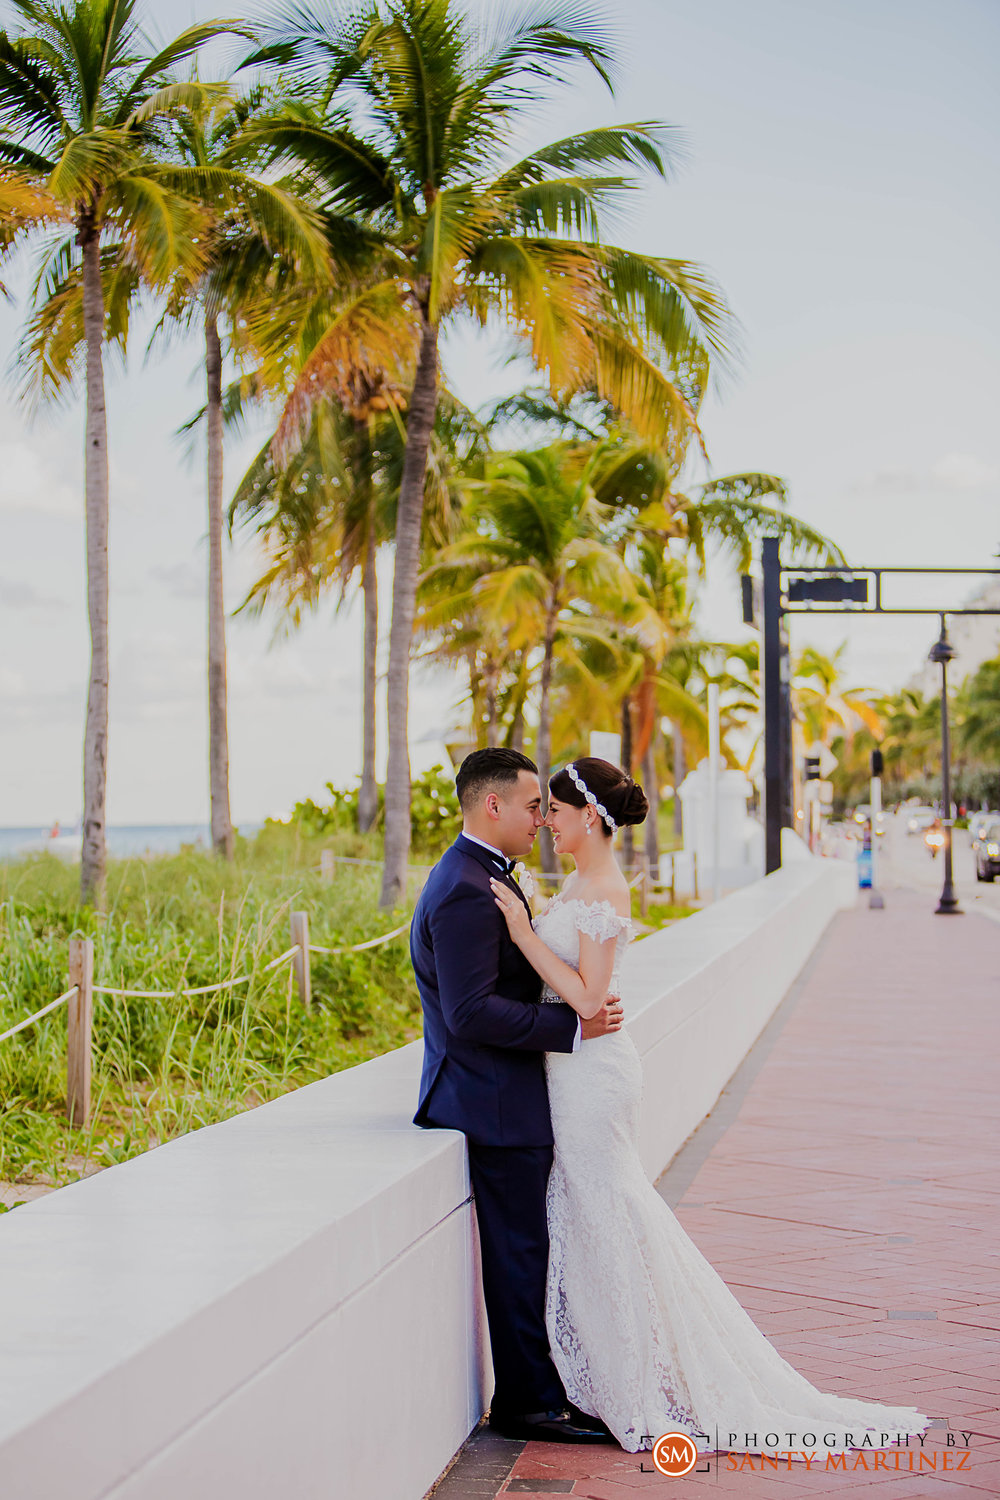 Miami Wedding Photographer - Santy Martinez-26.jpg